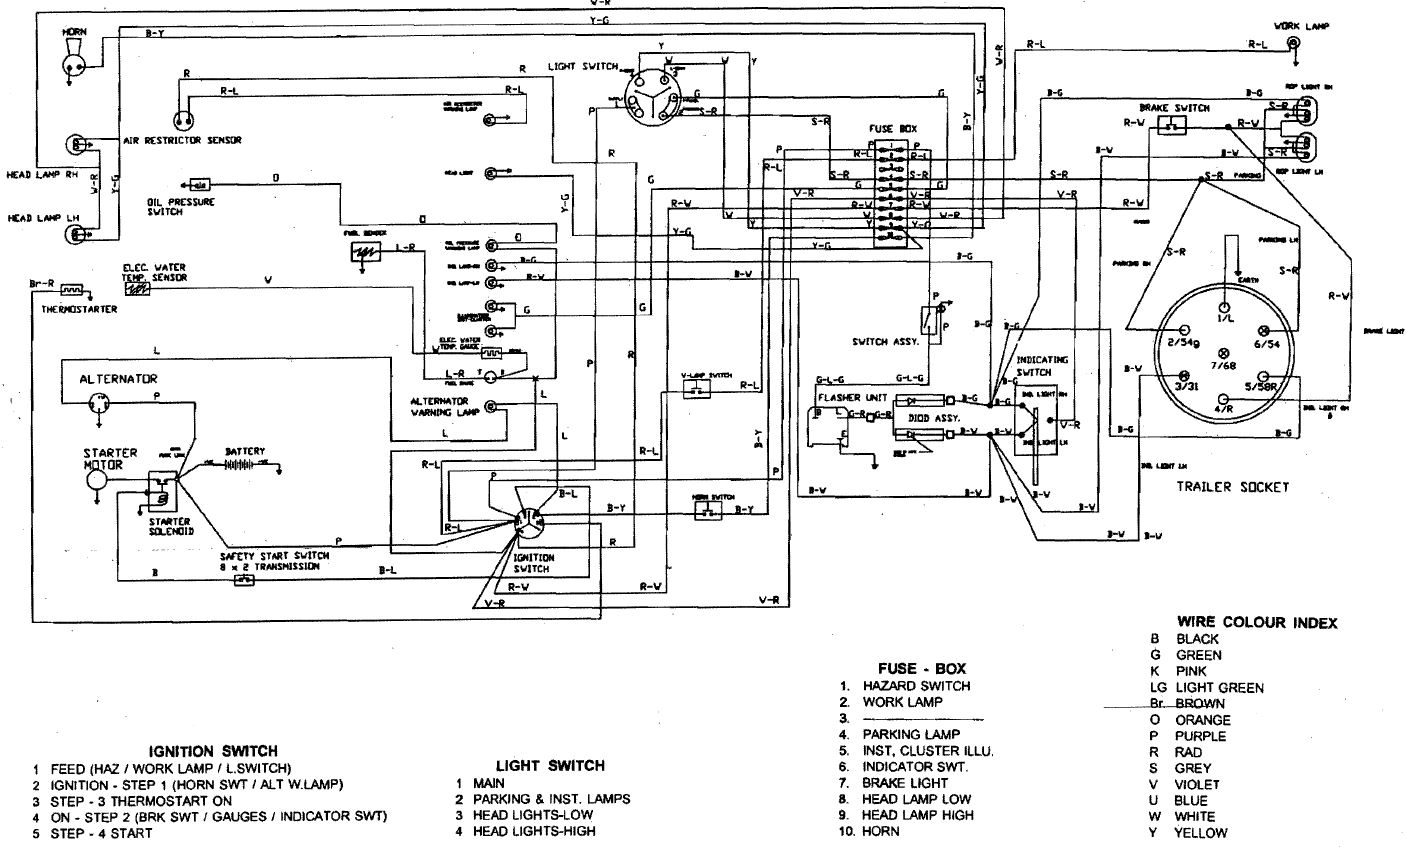 john deere 435 wiring diagram free picture wiring diagram schemes john  deere 4440 wiring diagram ignition